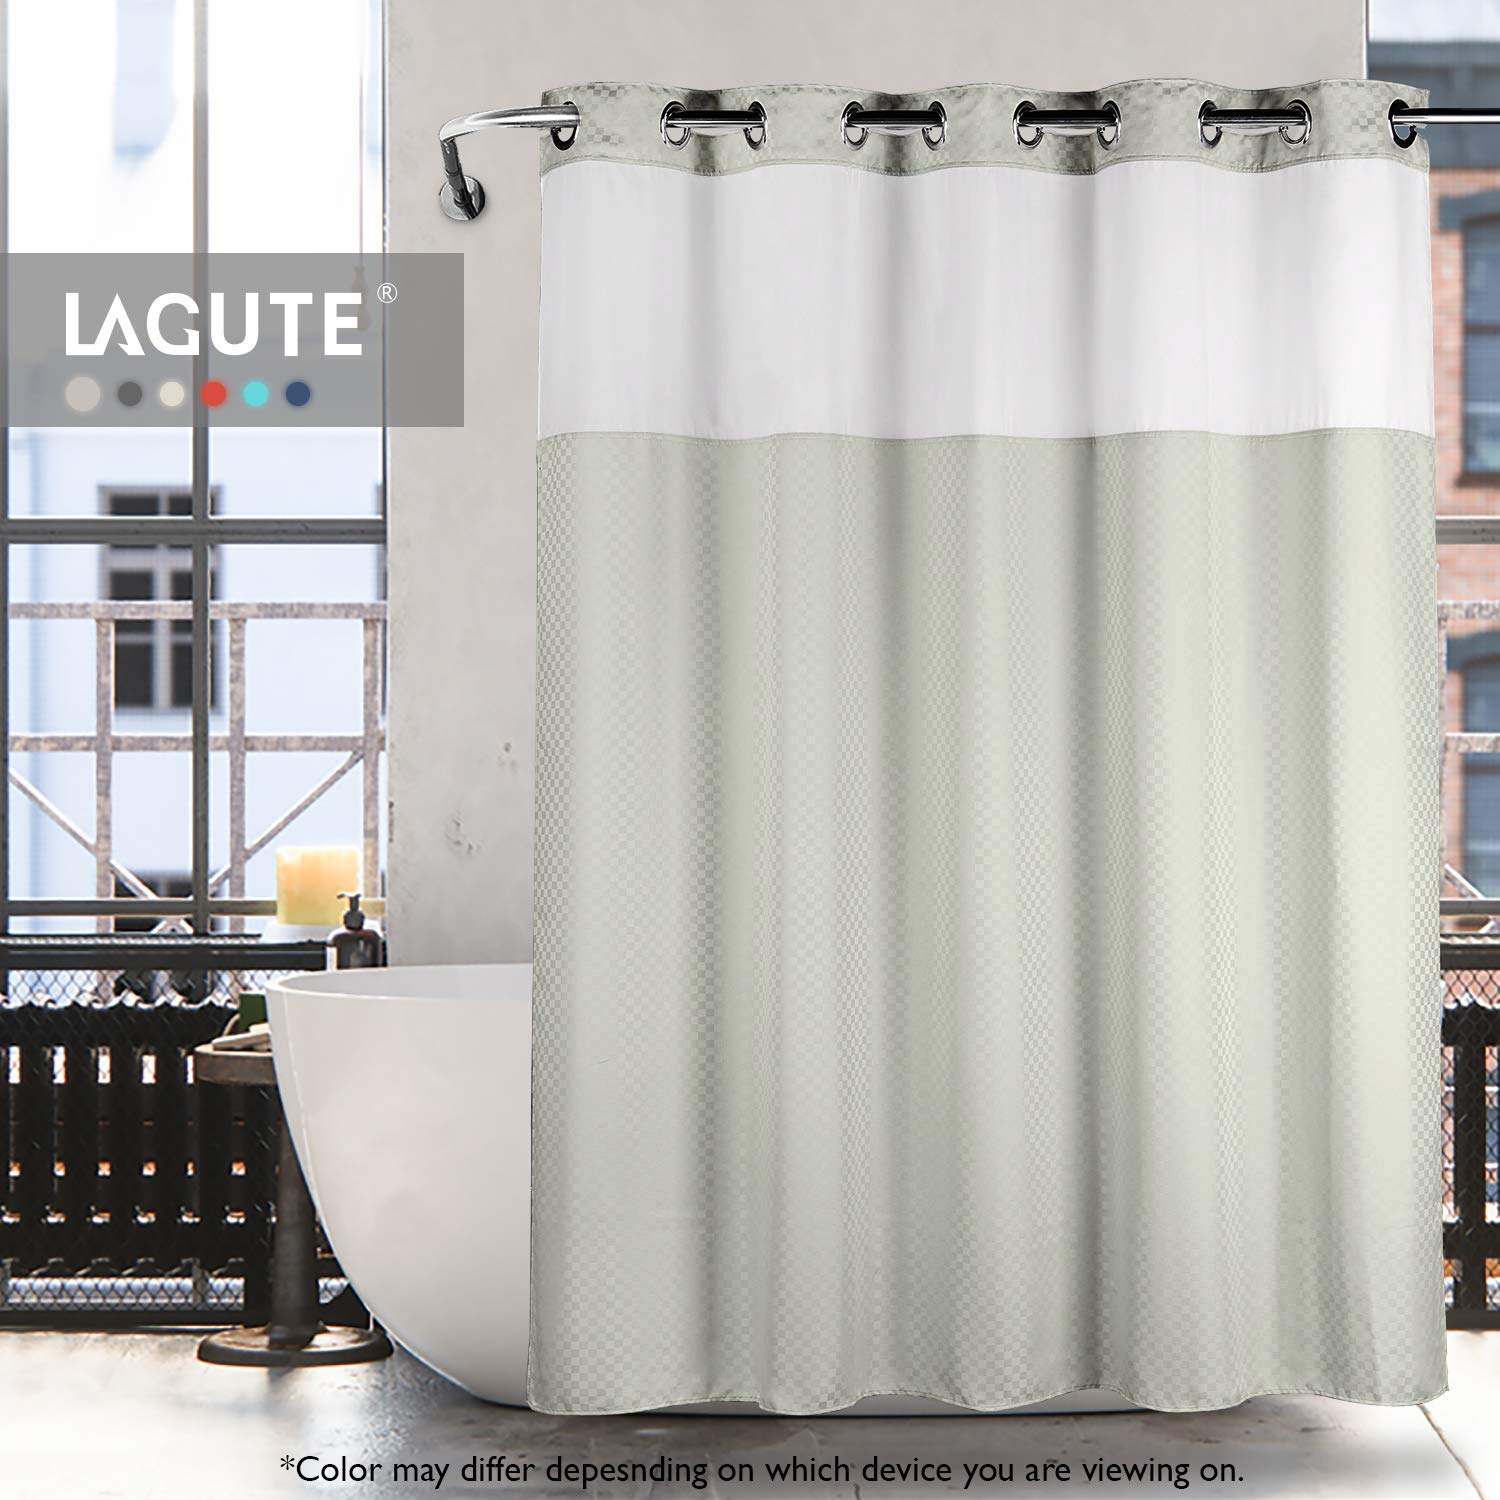 Lagute SnapHook TrueColor Hook Free Shower Curtain | Removable Liner | See Through Top | Machine Washable | Greenish Grey